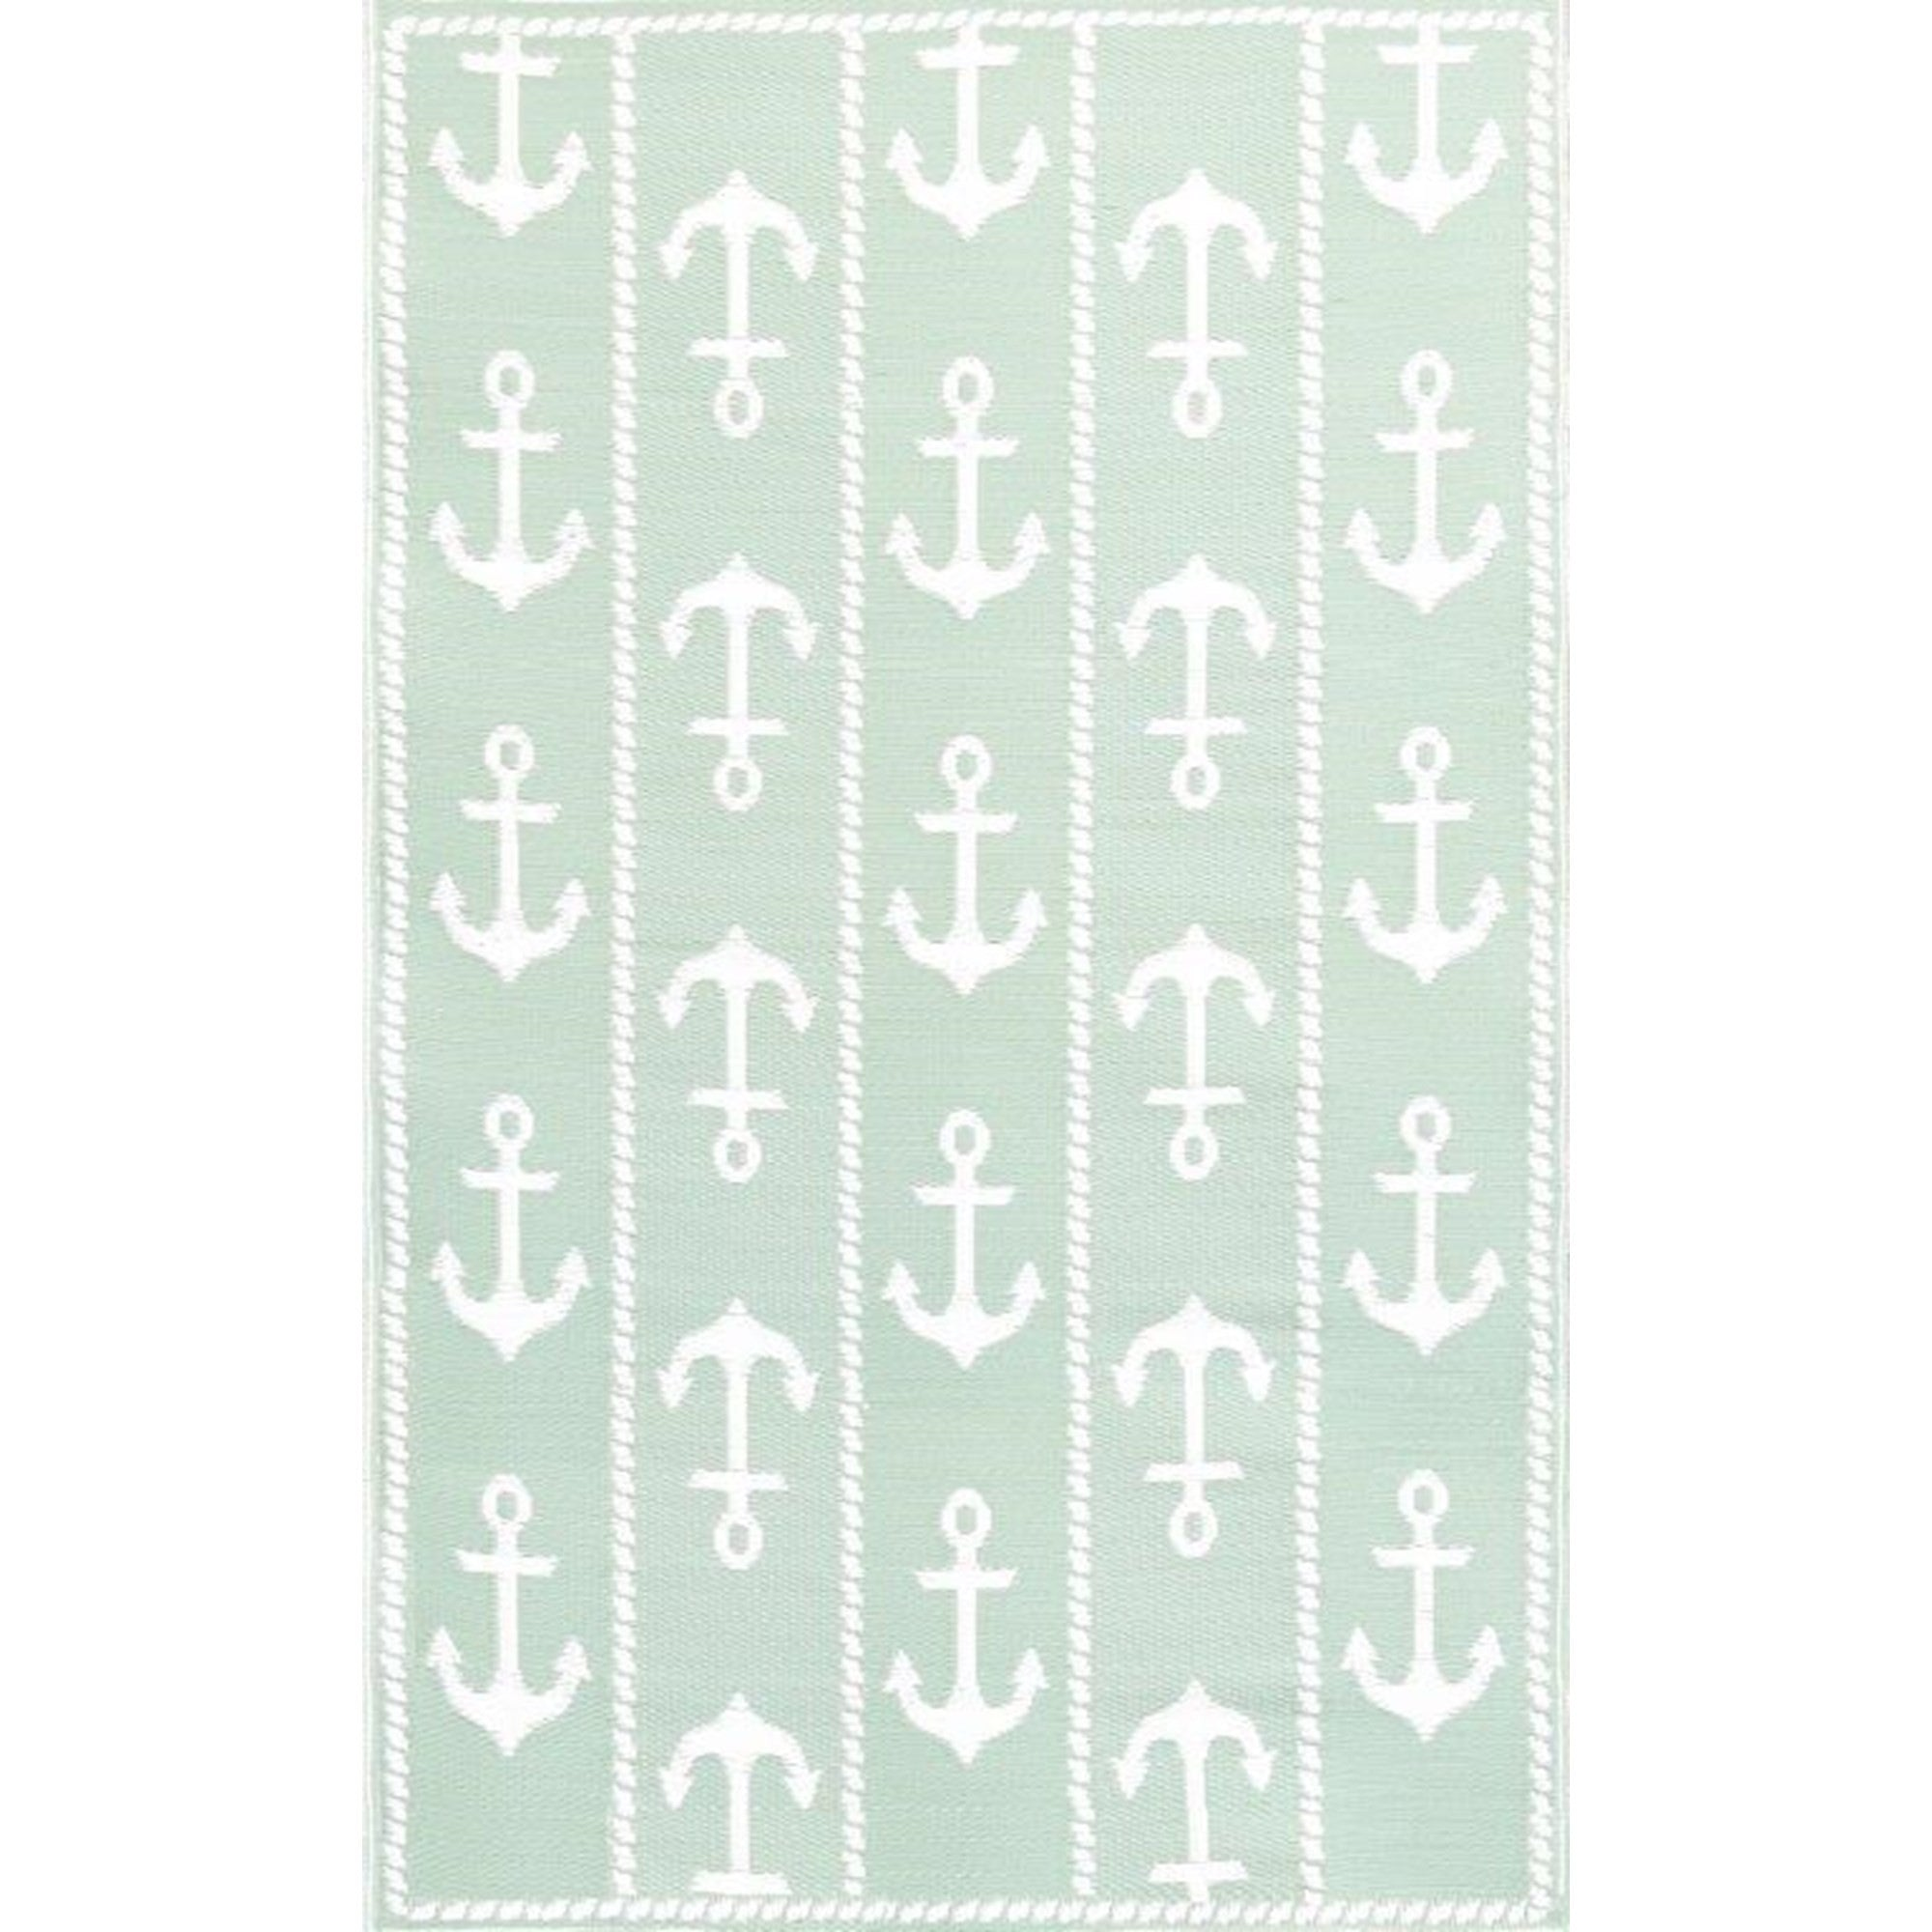 Mad Mats Outdoor Carpet Anchor, MMAT-Mad Mats, Putti Fine Furnishings